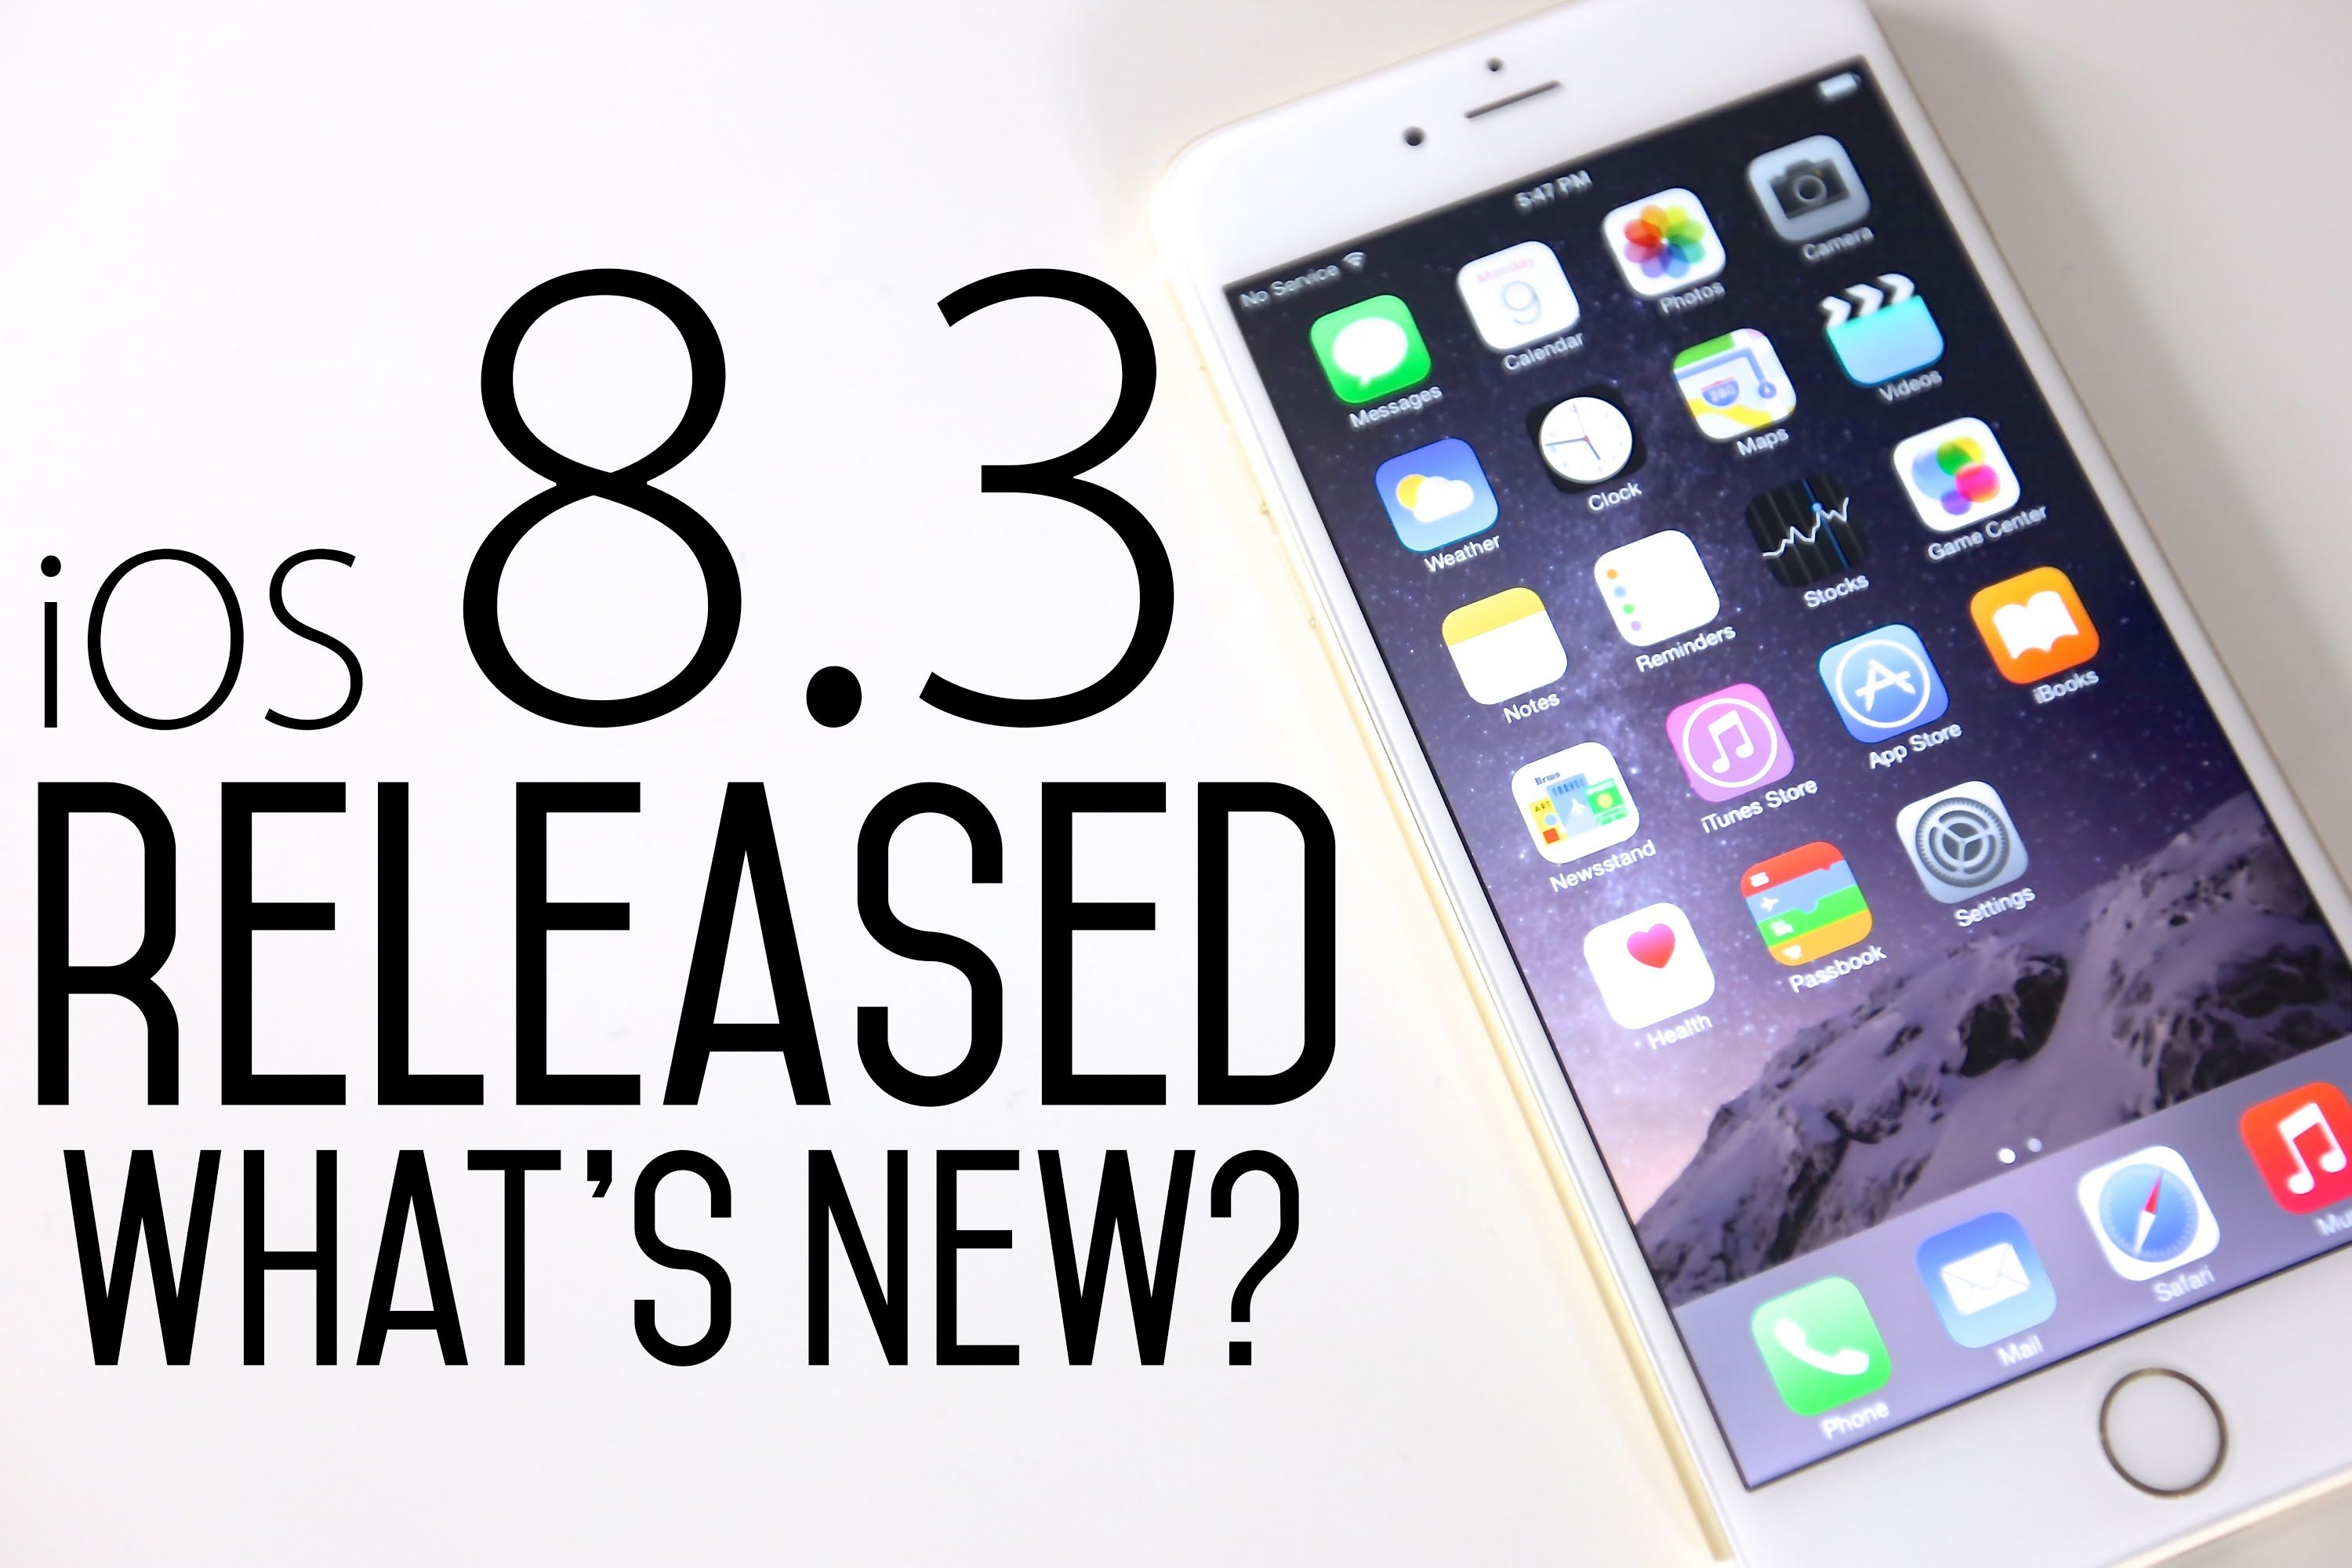 Apple Unleashes Ios 8 3 Update For Iphone And Ipad Including New Emoji On The Emoji Front Is An Updated Menu That Makes It Easier To Ios 8 Ios Update Iphone